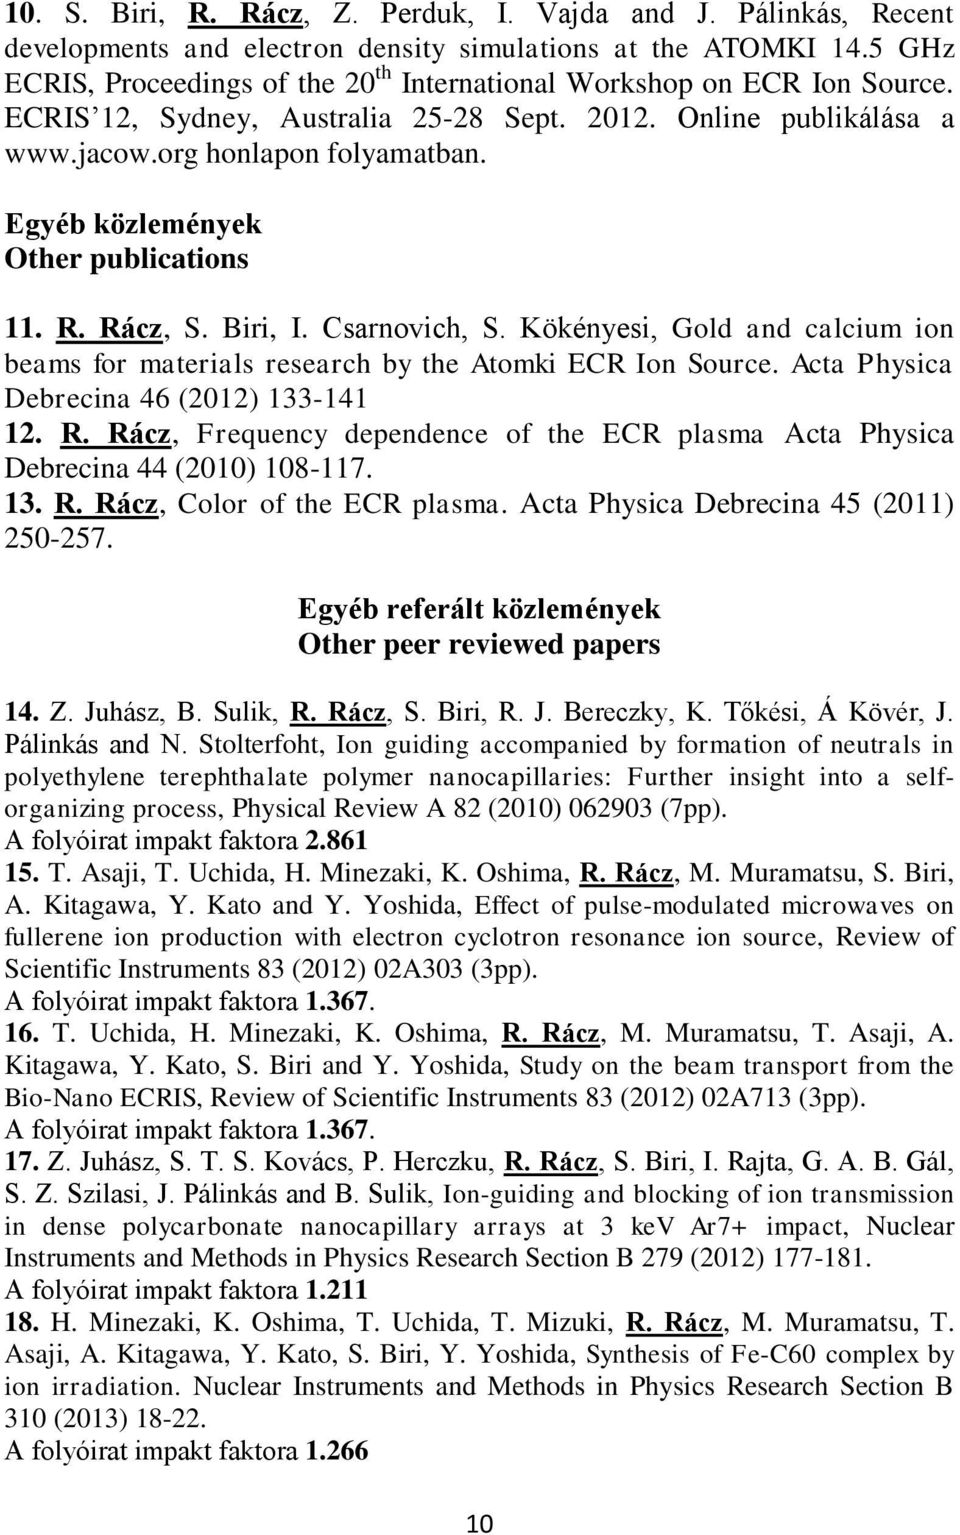 Egyéb közlemények Other publications 11. R. Rácz, S. Biri, I. Csarnovich, S. Kökényesi, Gold and calcium ion beams for materials research by the Atomki ECR Ion Source.